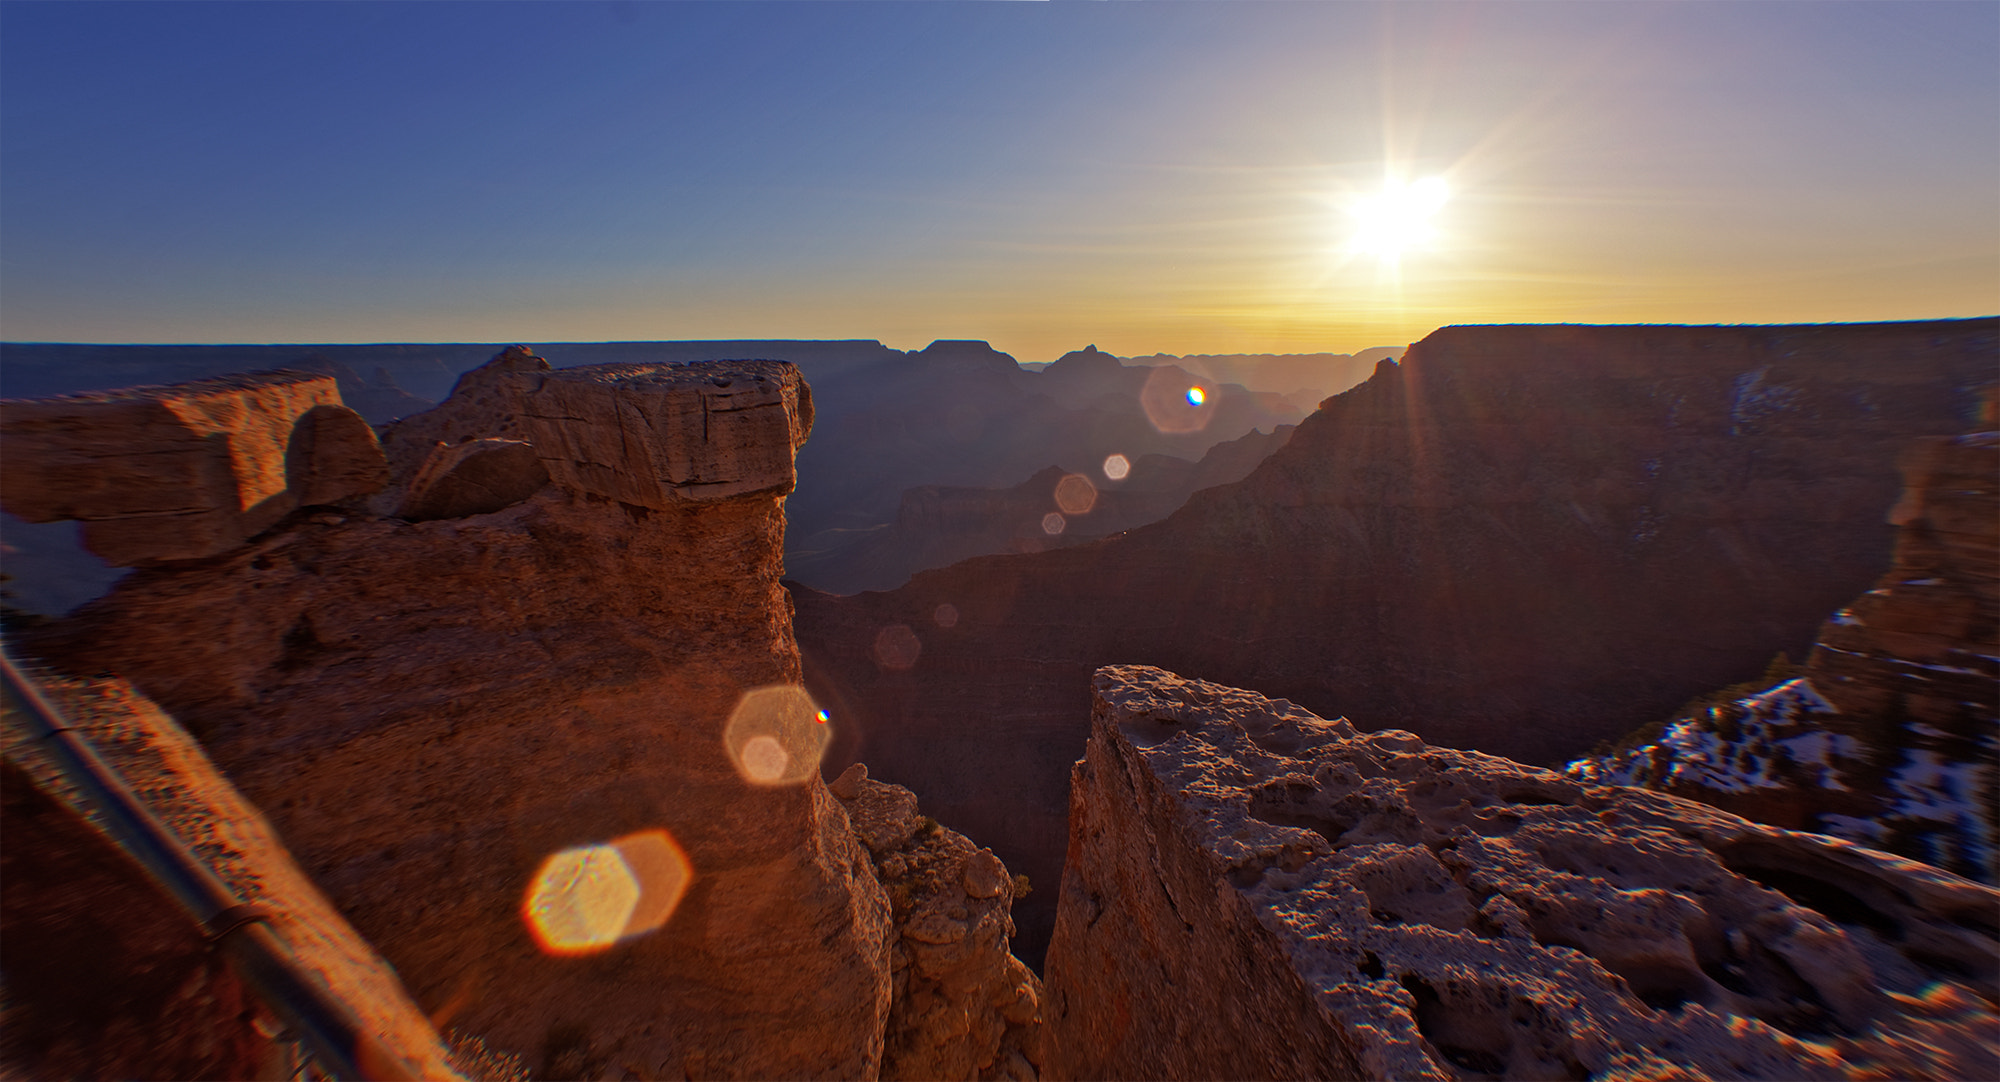 Photograph Sunny morning at Grand Canyon by Bak [R]asulev on 500px